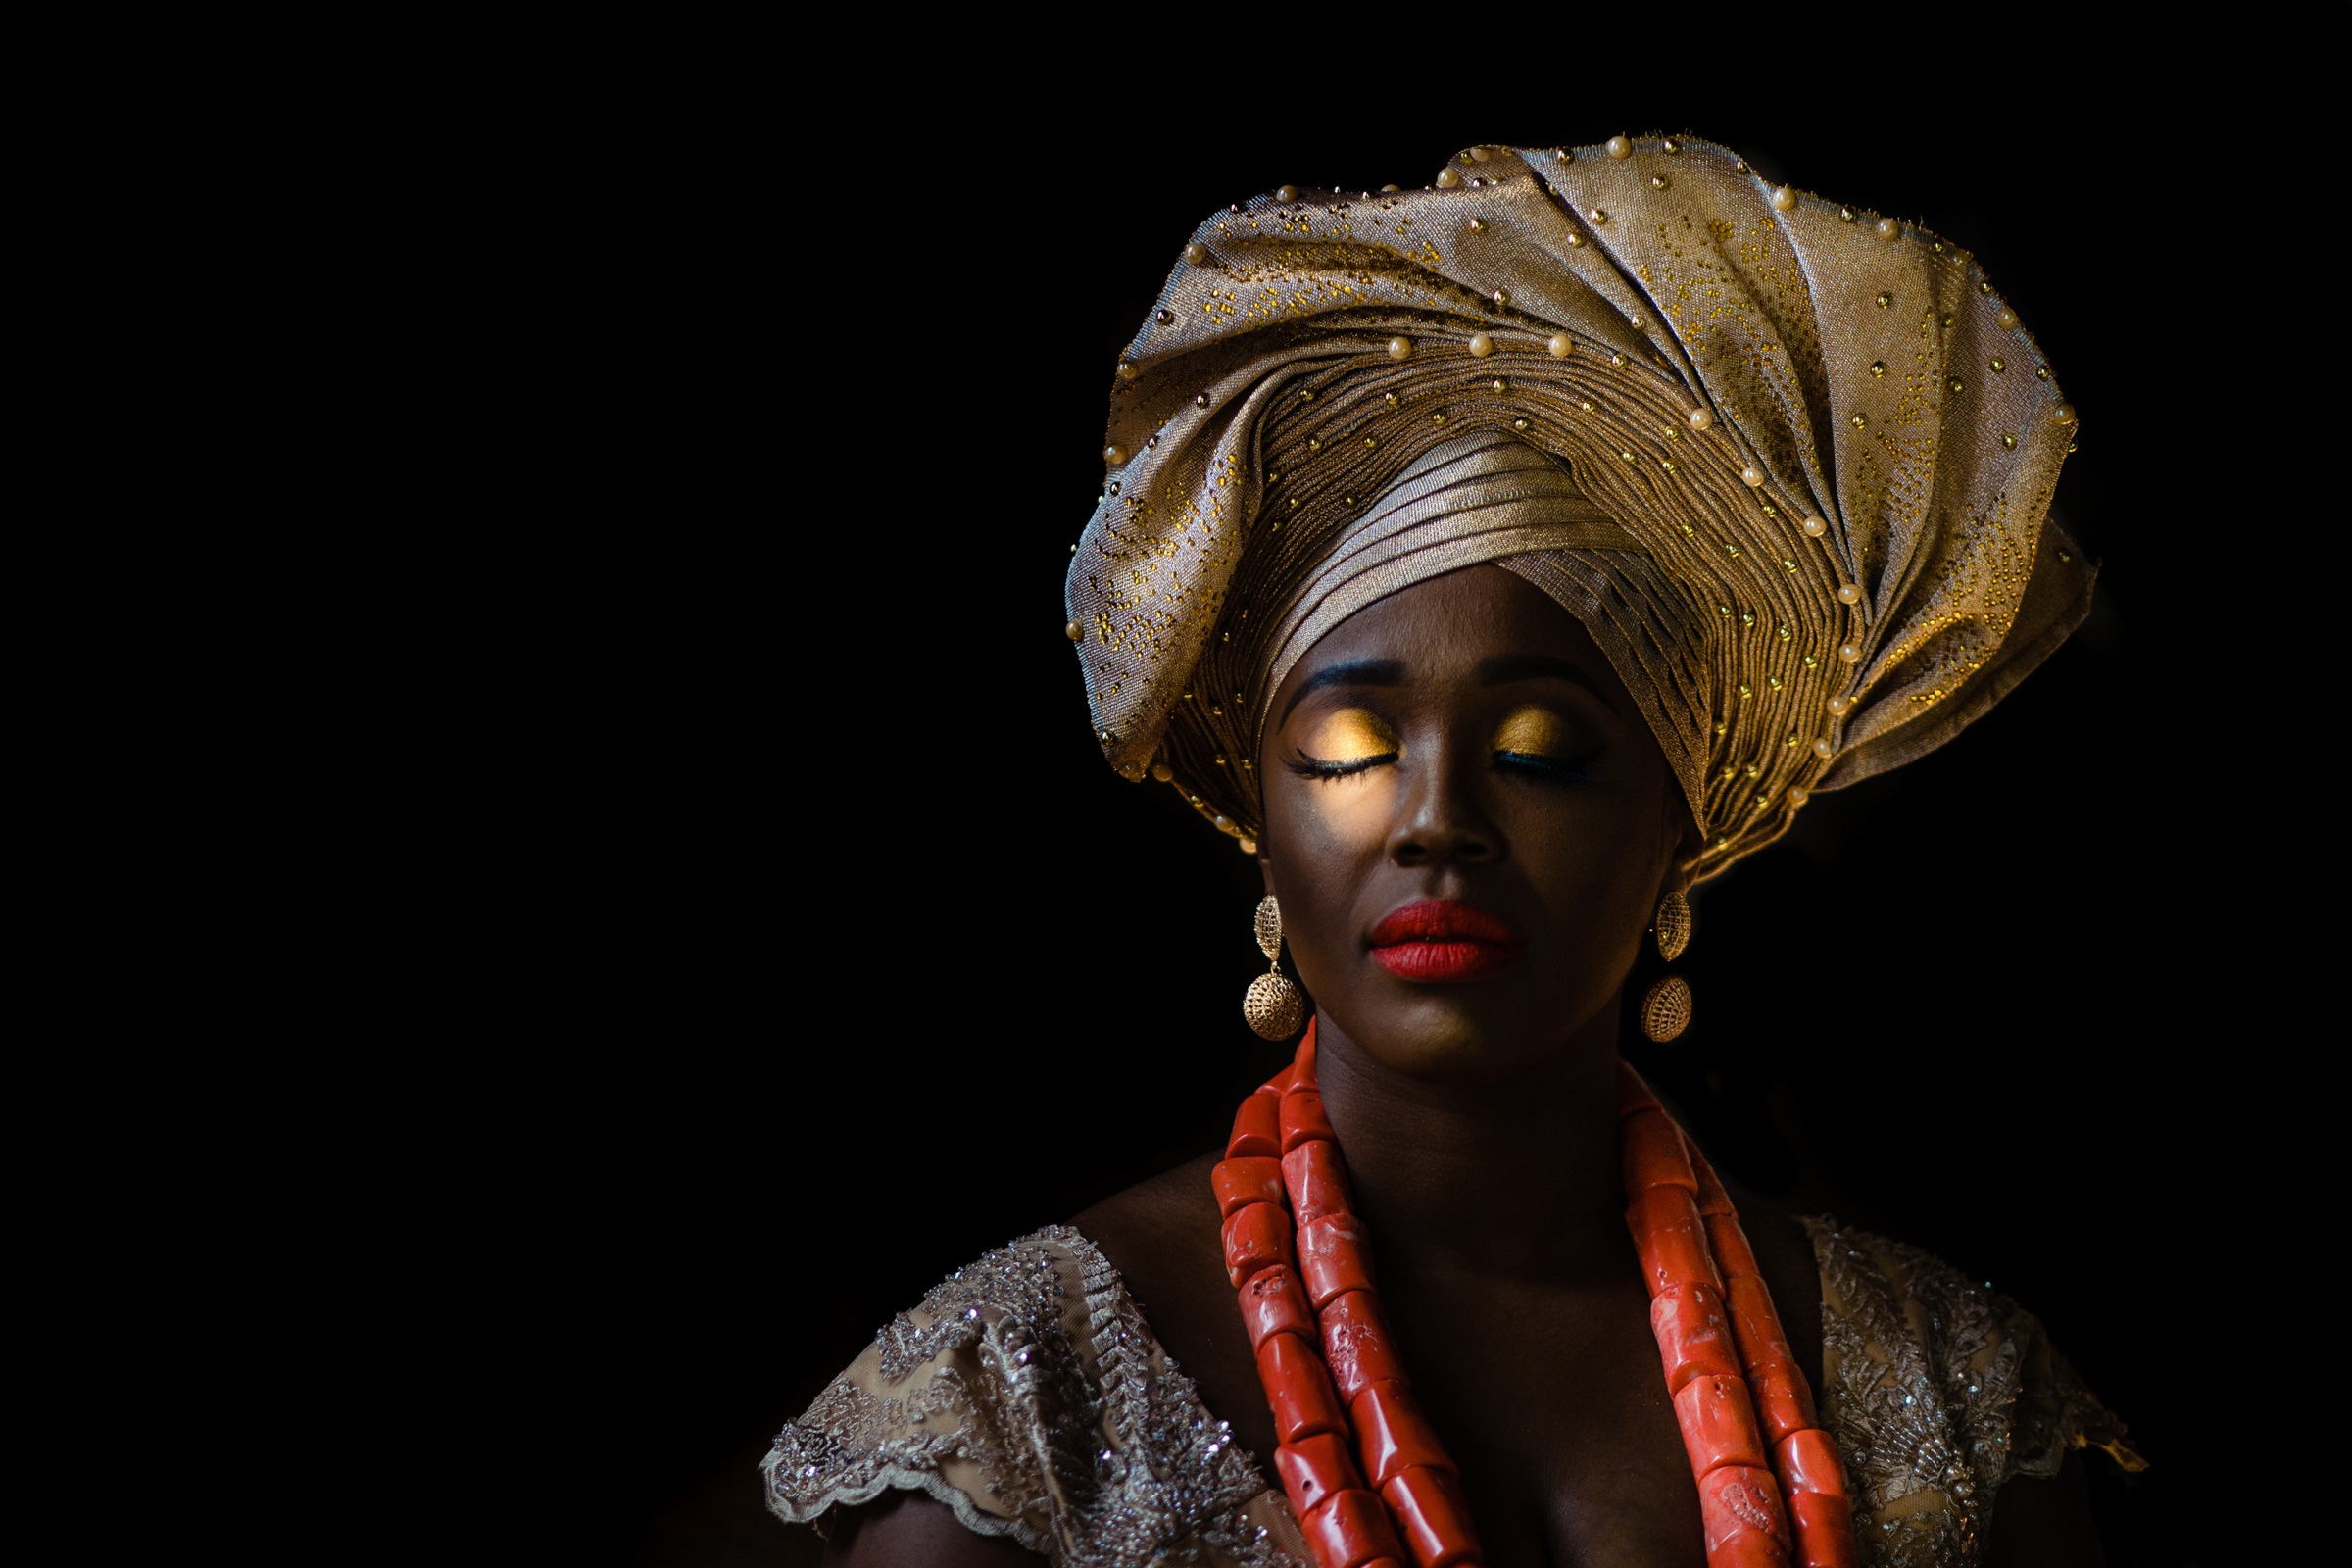 beautiful portrait of woman with gold head piece on-Arkansas photographer - photo by Vinson Images